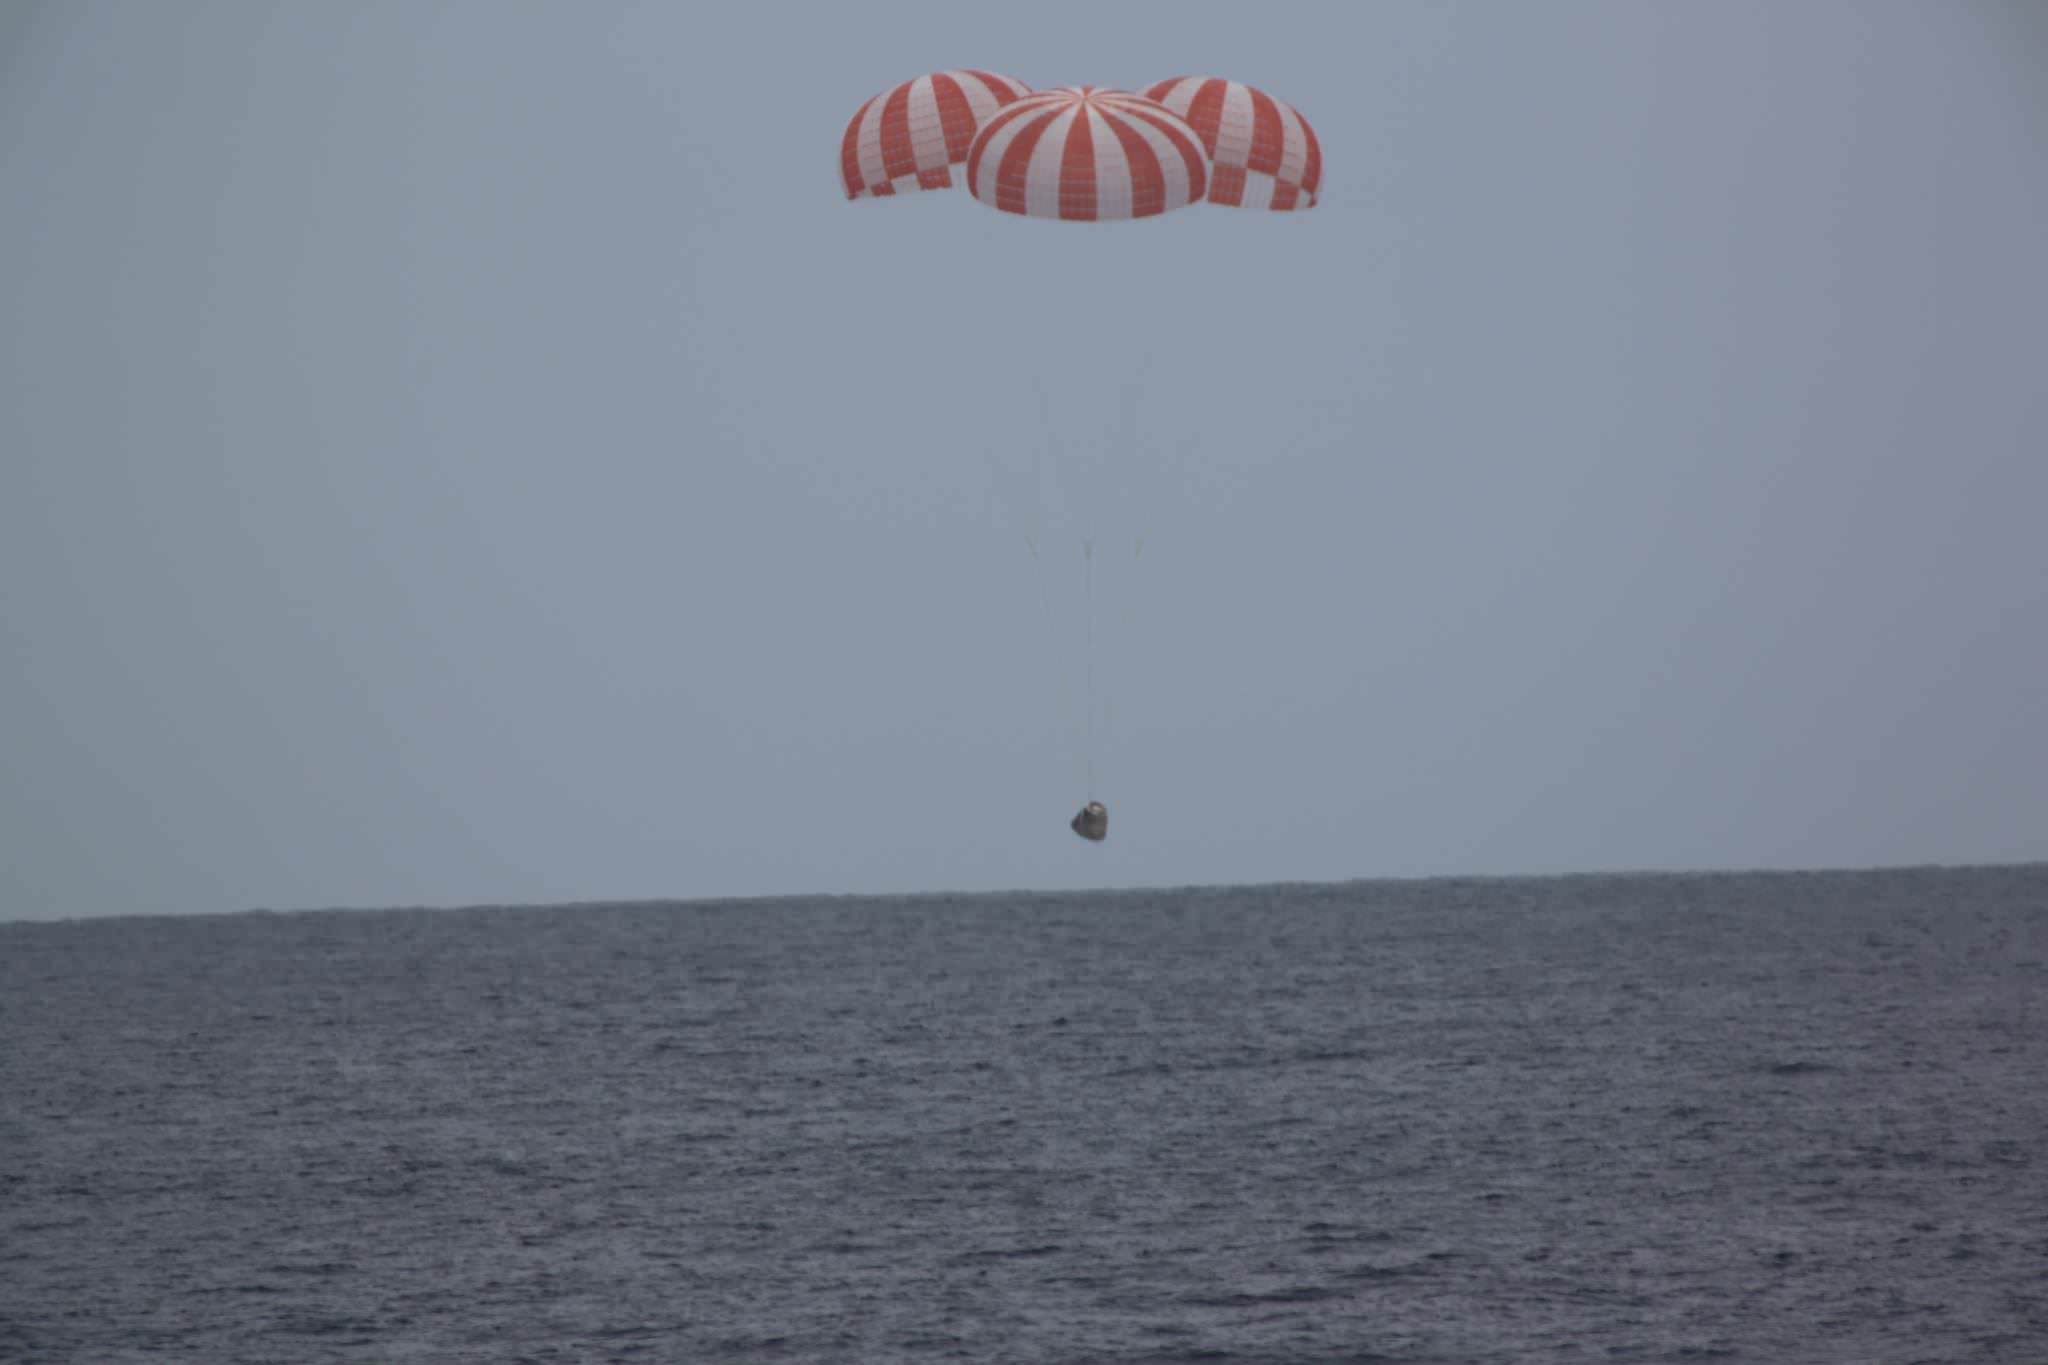 A SpaceX Dragon cargo spacecraft splashed down in the Pacific Ocean at 2:51 p.m. EDT today, May 11, with more than 3,700 pounds of NASA cargo, science and technology demonstration samples from the International Space Station.  Credit: NASA